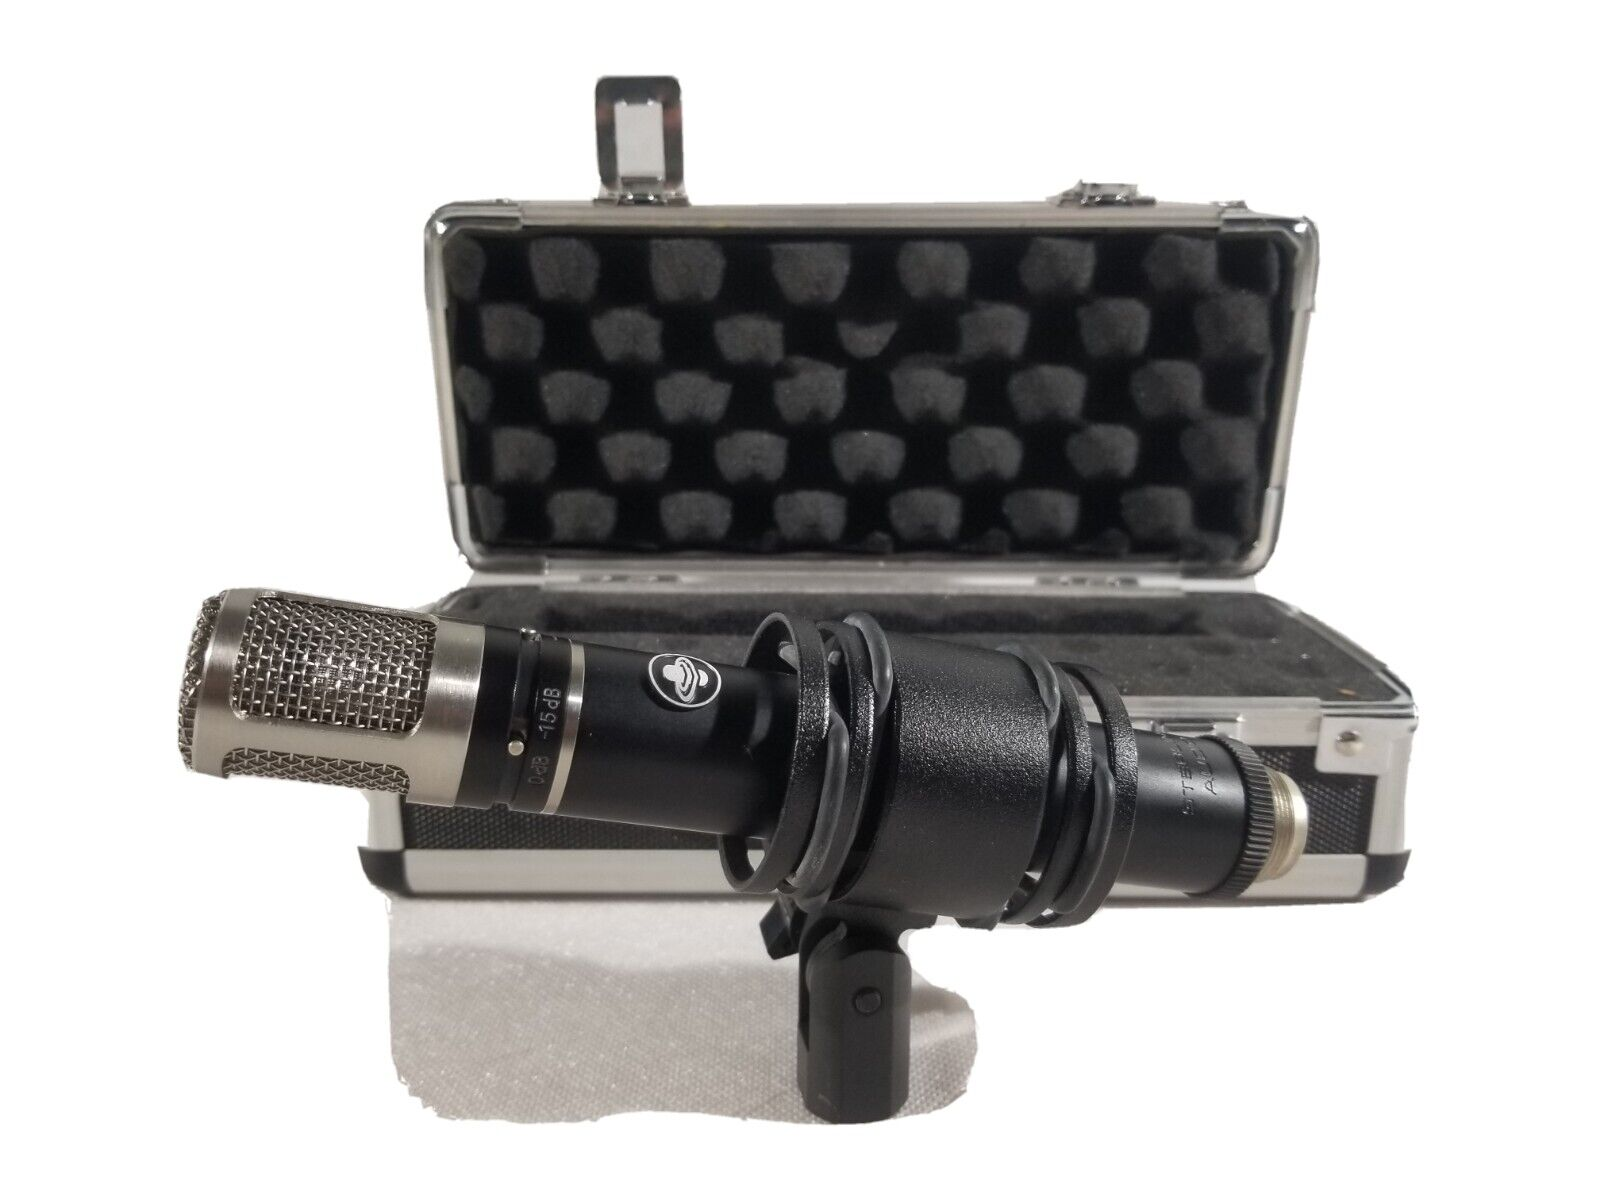 Sterling Audio ST33 microphone. Buy it now for 200.00